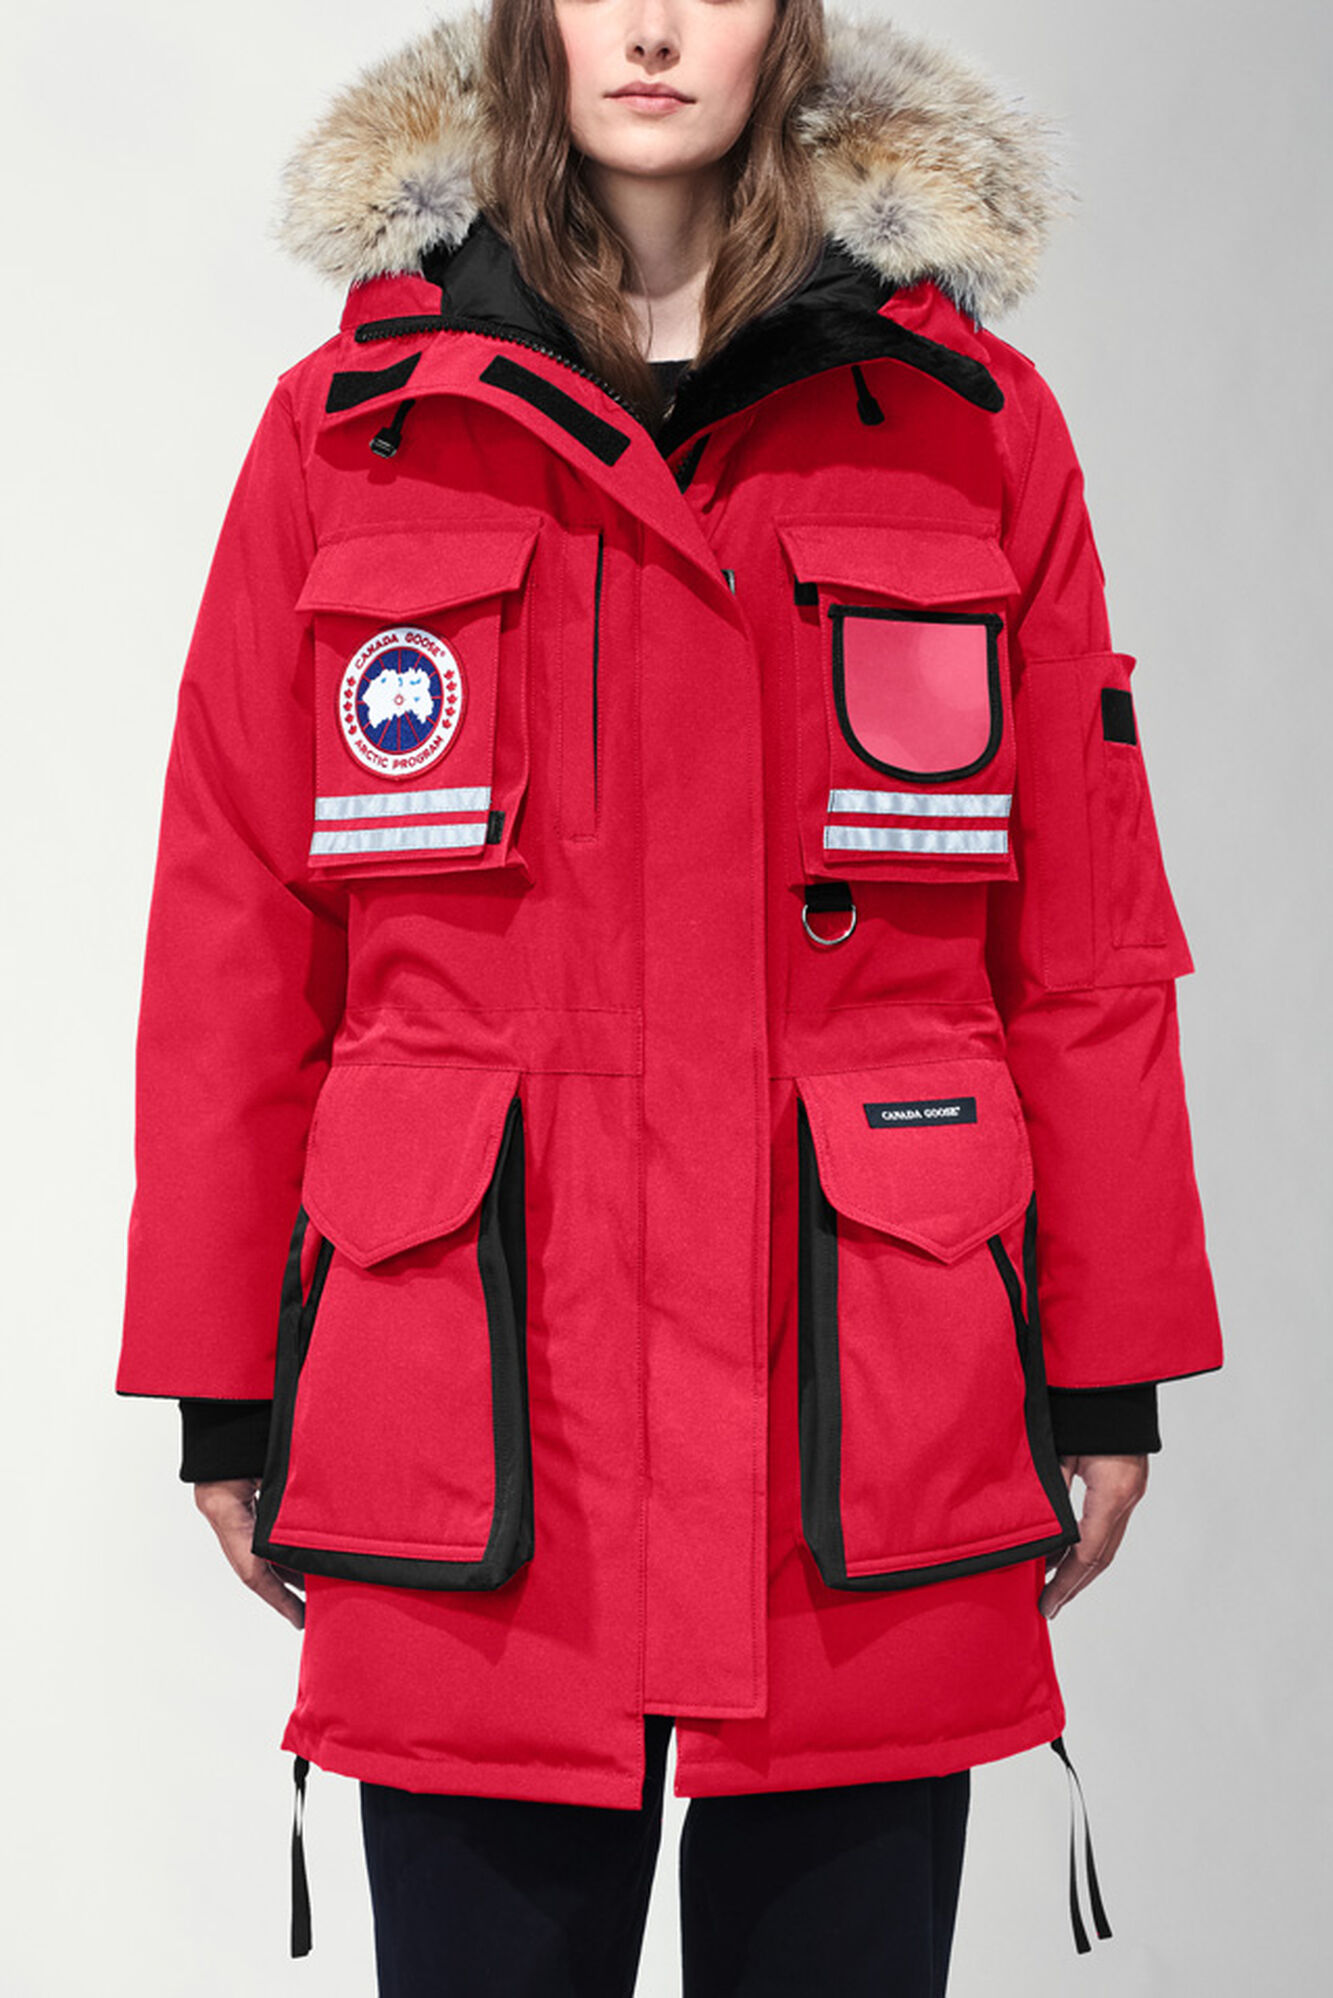 Canada Goose chilliwack parka replica fake - Womens Extreme Weather Outerwear | Canada Goose?